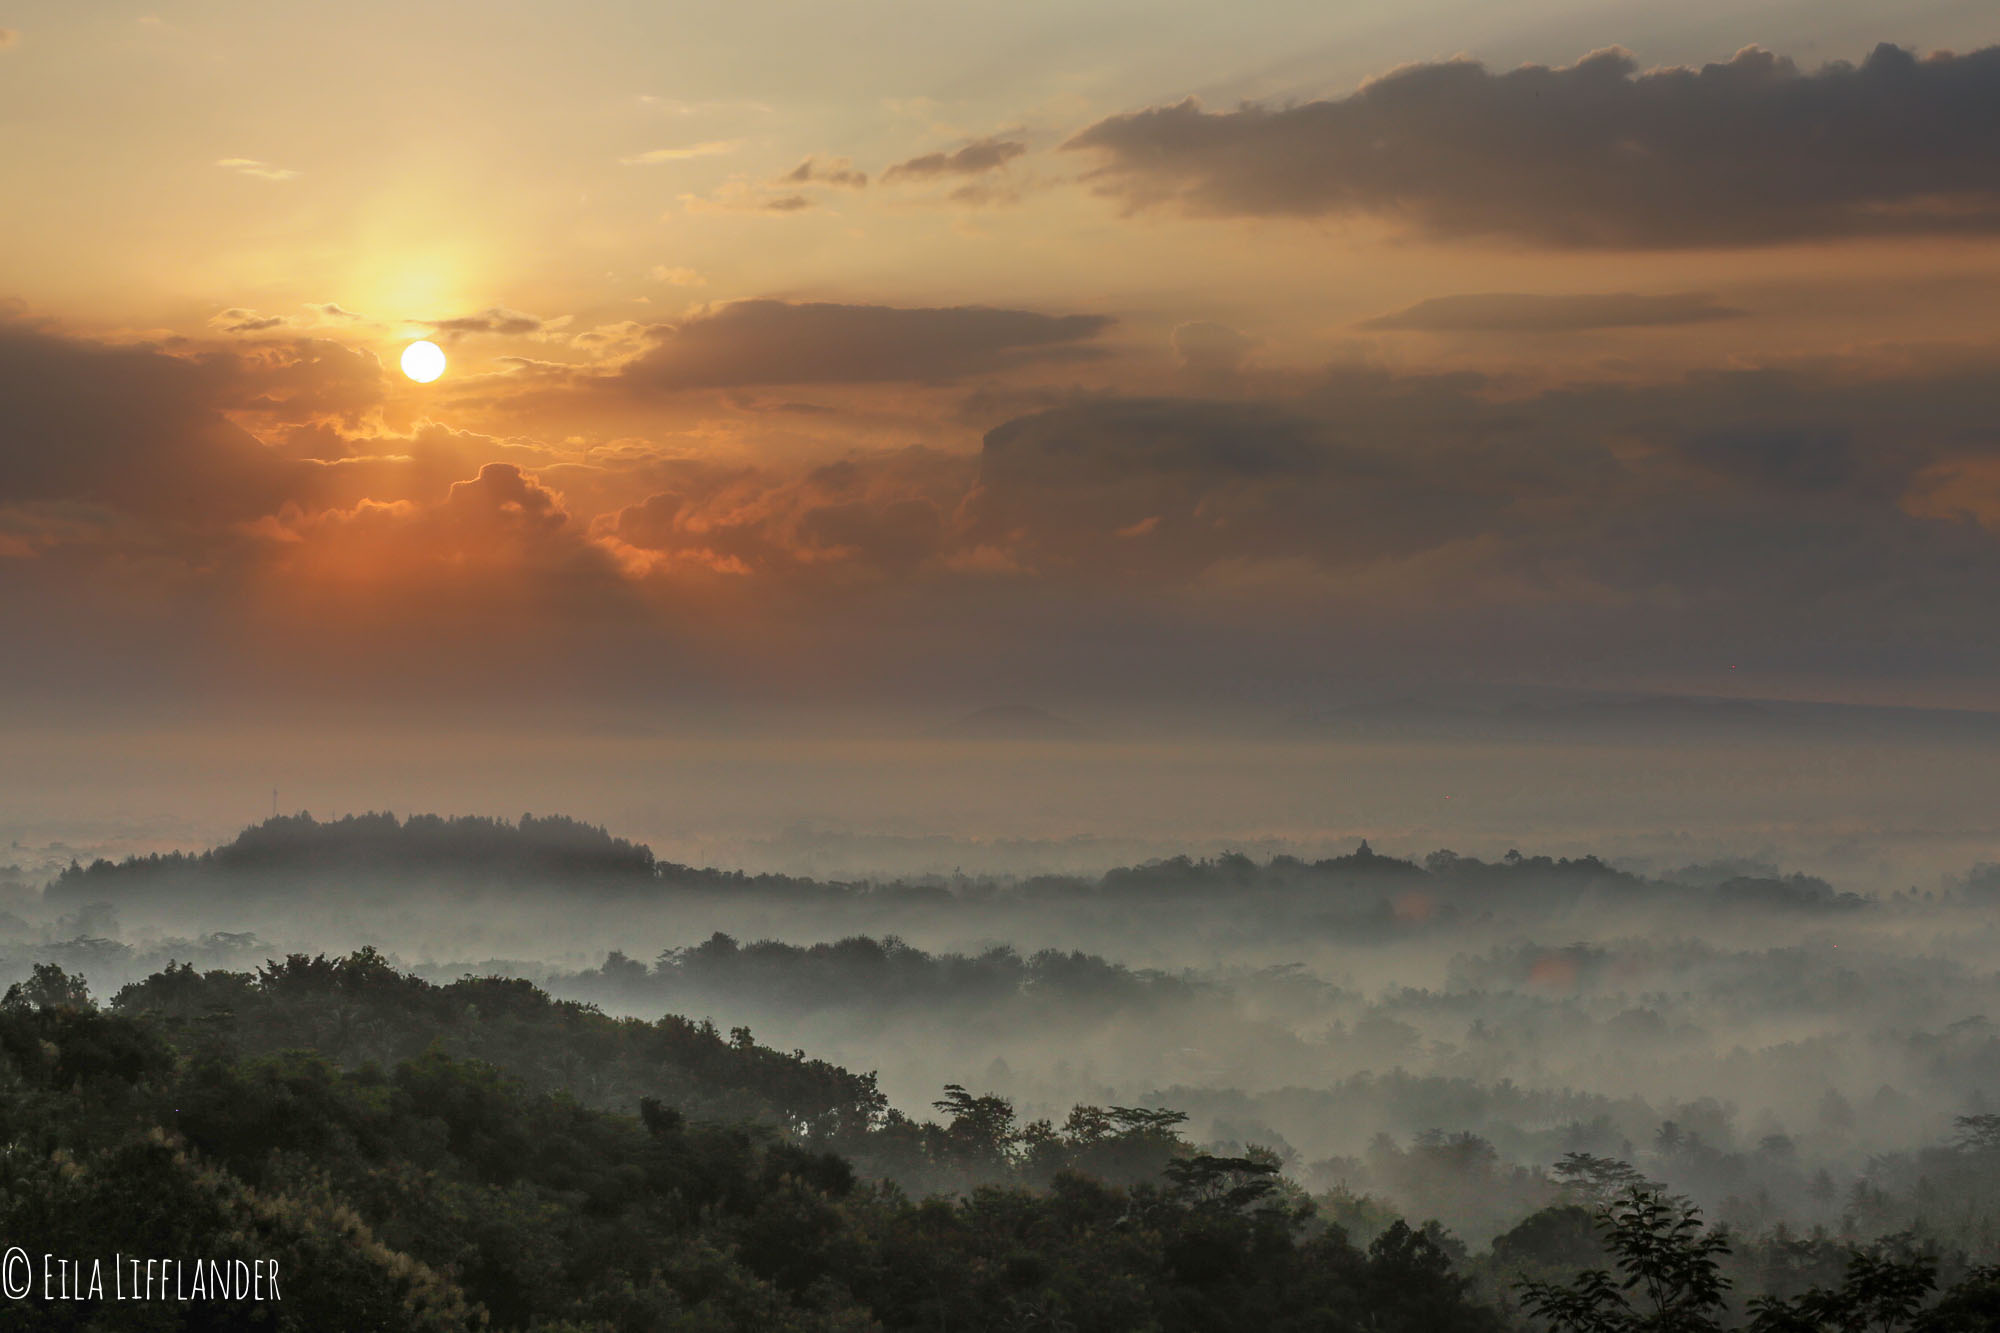 Sunrise at Punthuk Setumbu Hill Magelang